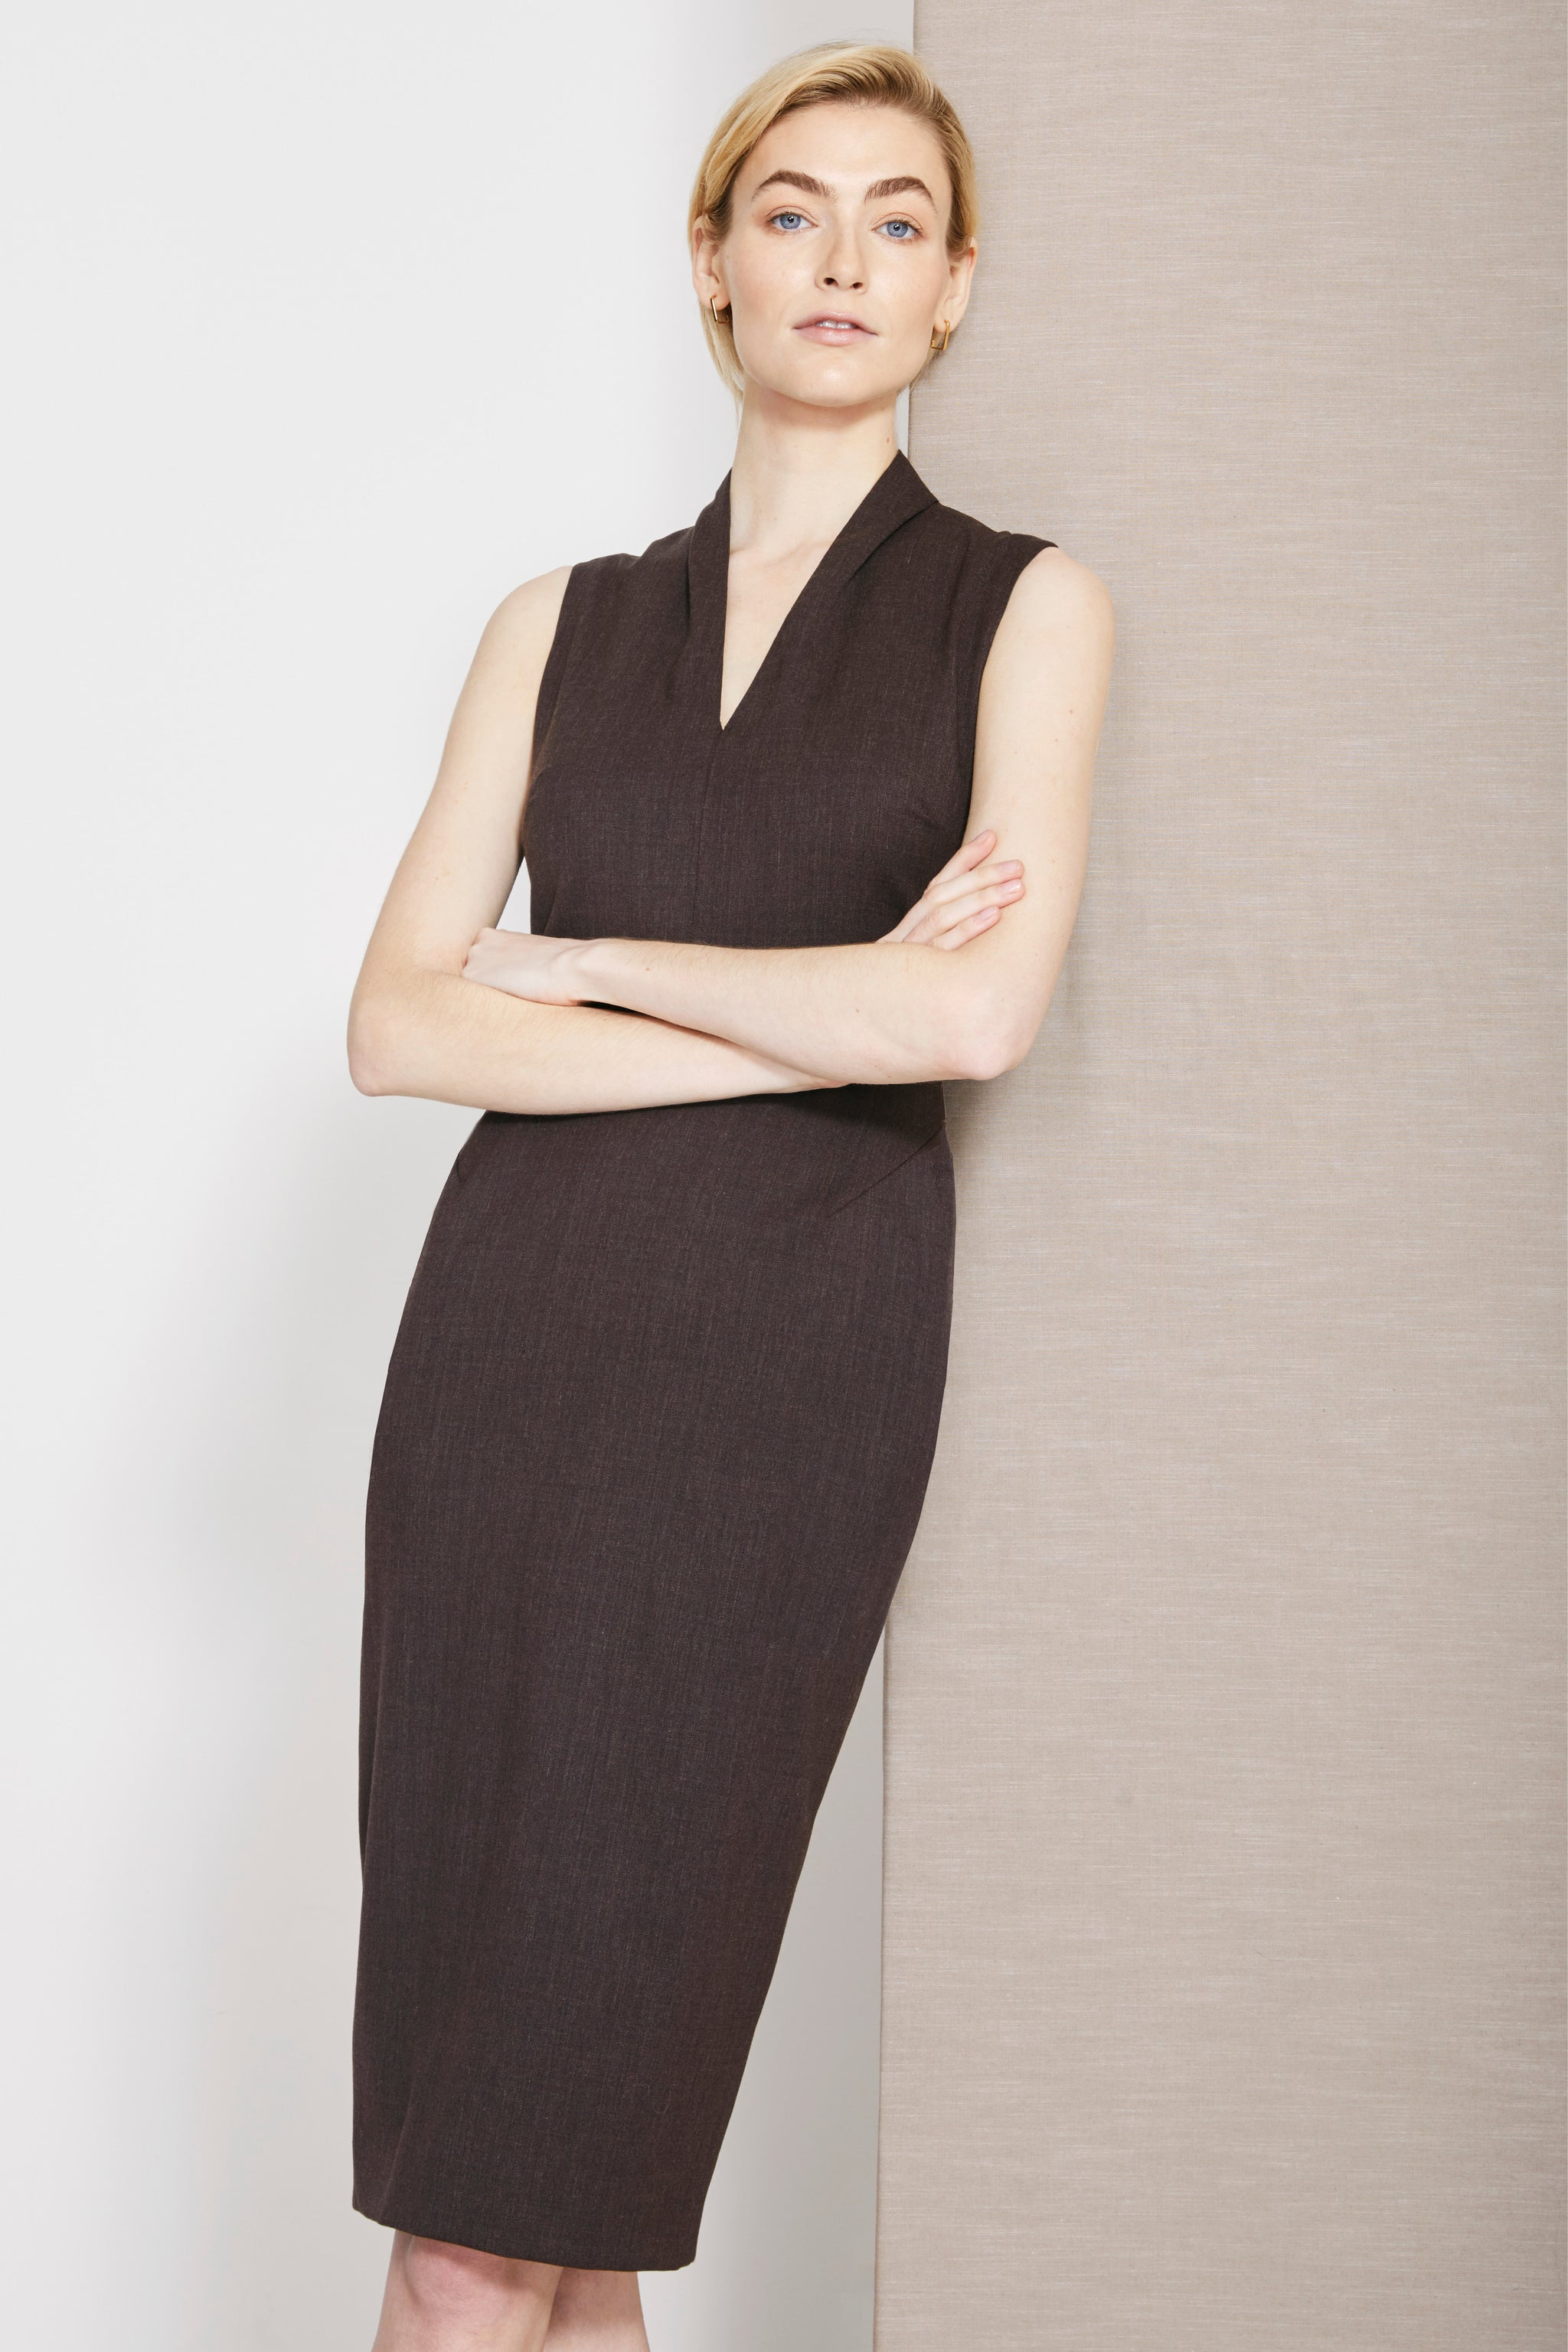 Allington Truffle Brown Dress